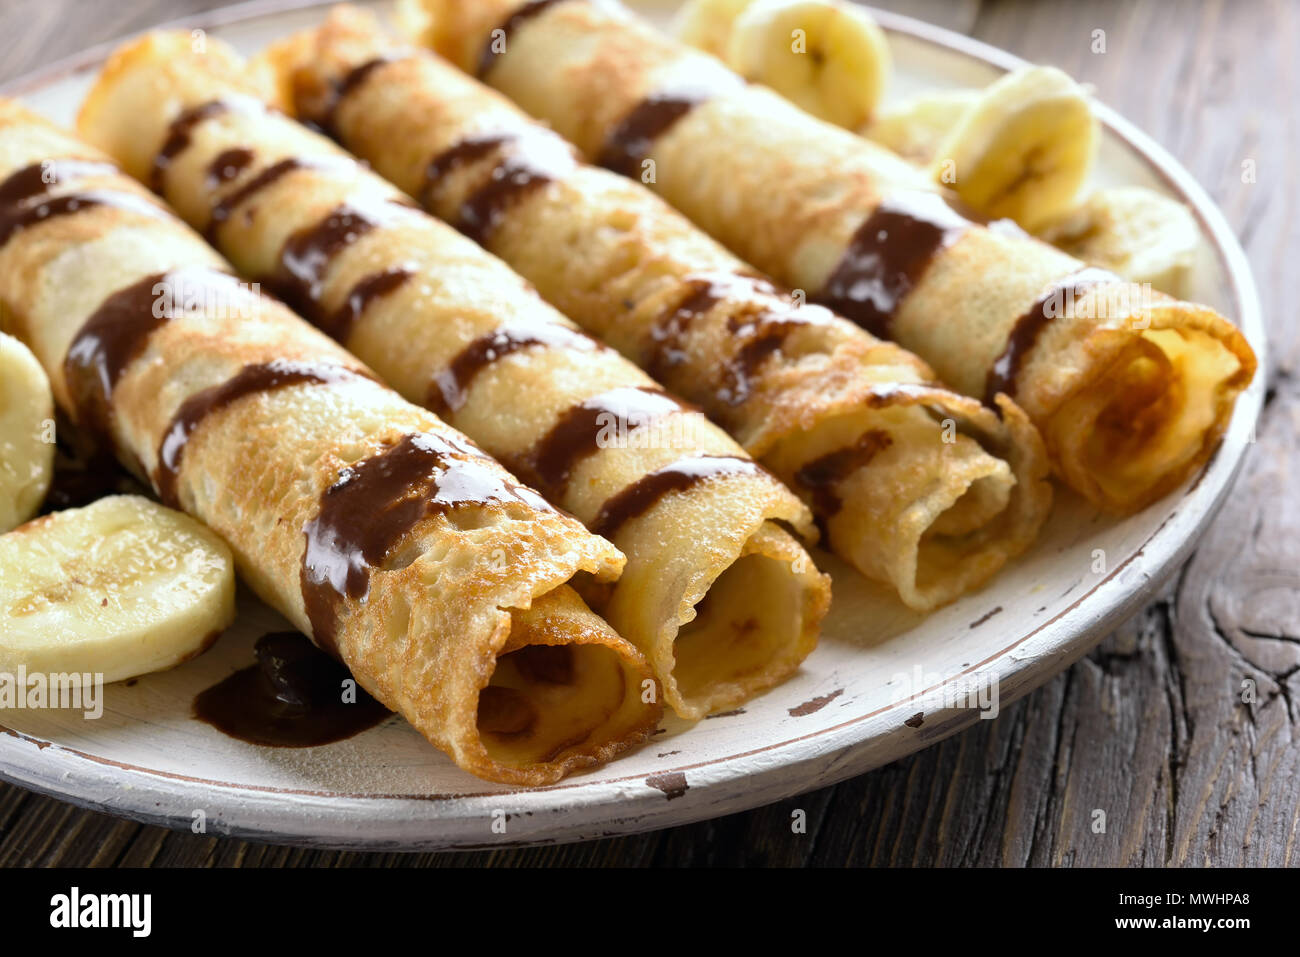 Close up of tasty crepe roll with banana slices on wooden table. Thin pancakes, crepes with chocolate sauce. Shallow depth of field - Stock Image